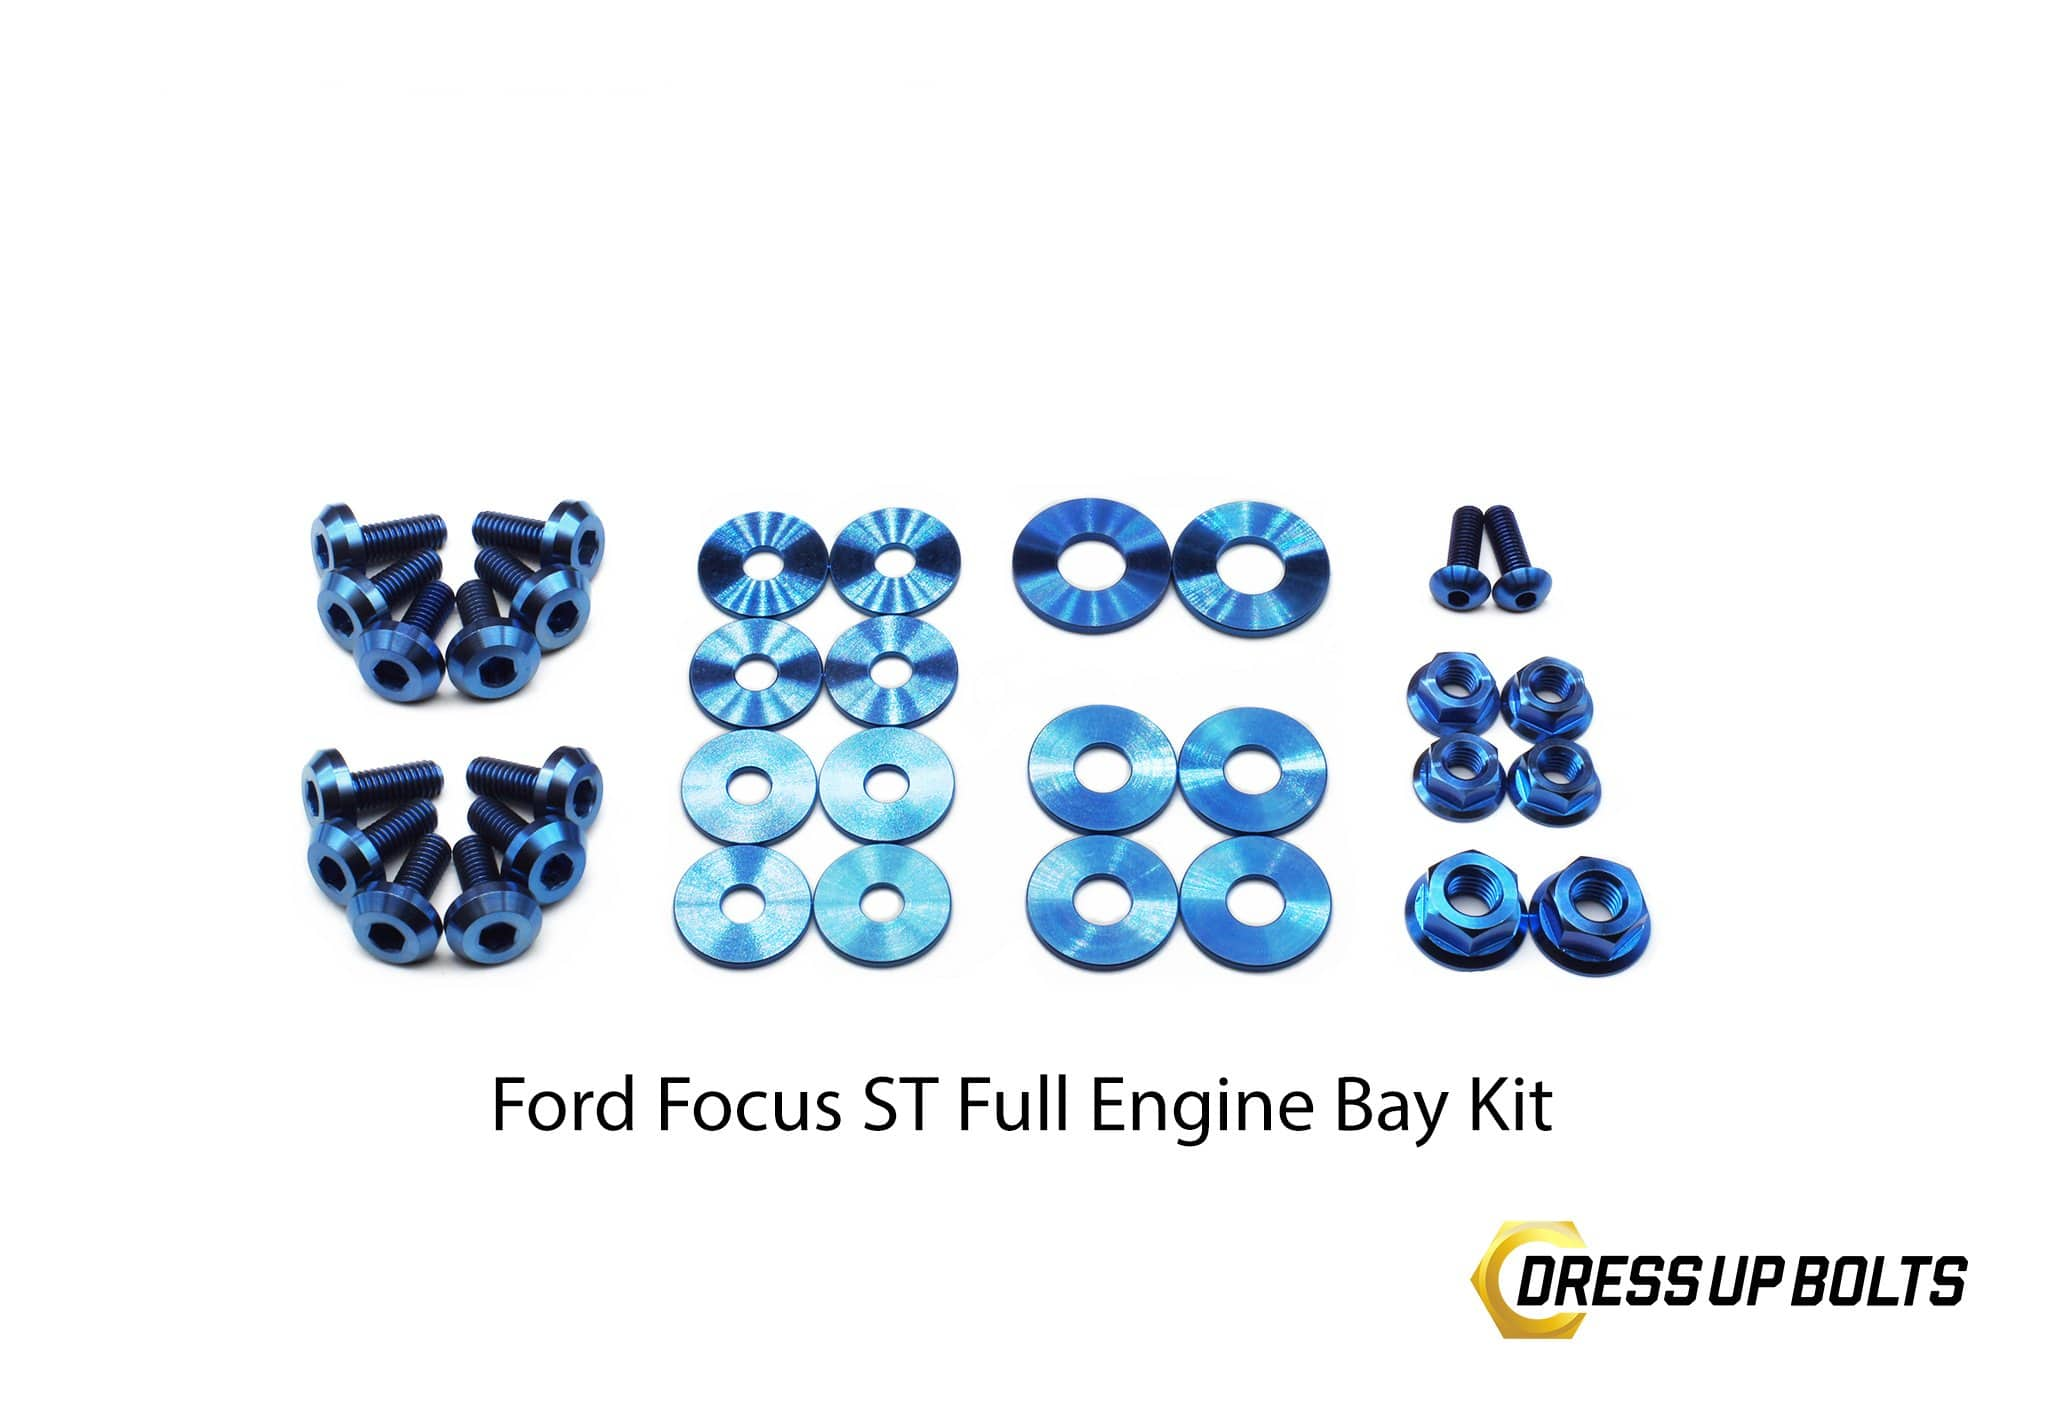 Ford Focus ST (2015-2018) Titanium Dress Up Bolt Engine Bay Kit - DressUpBolts.com